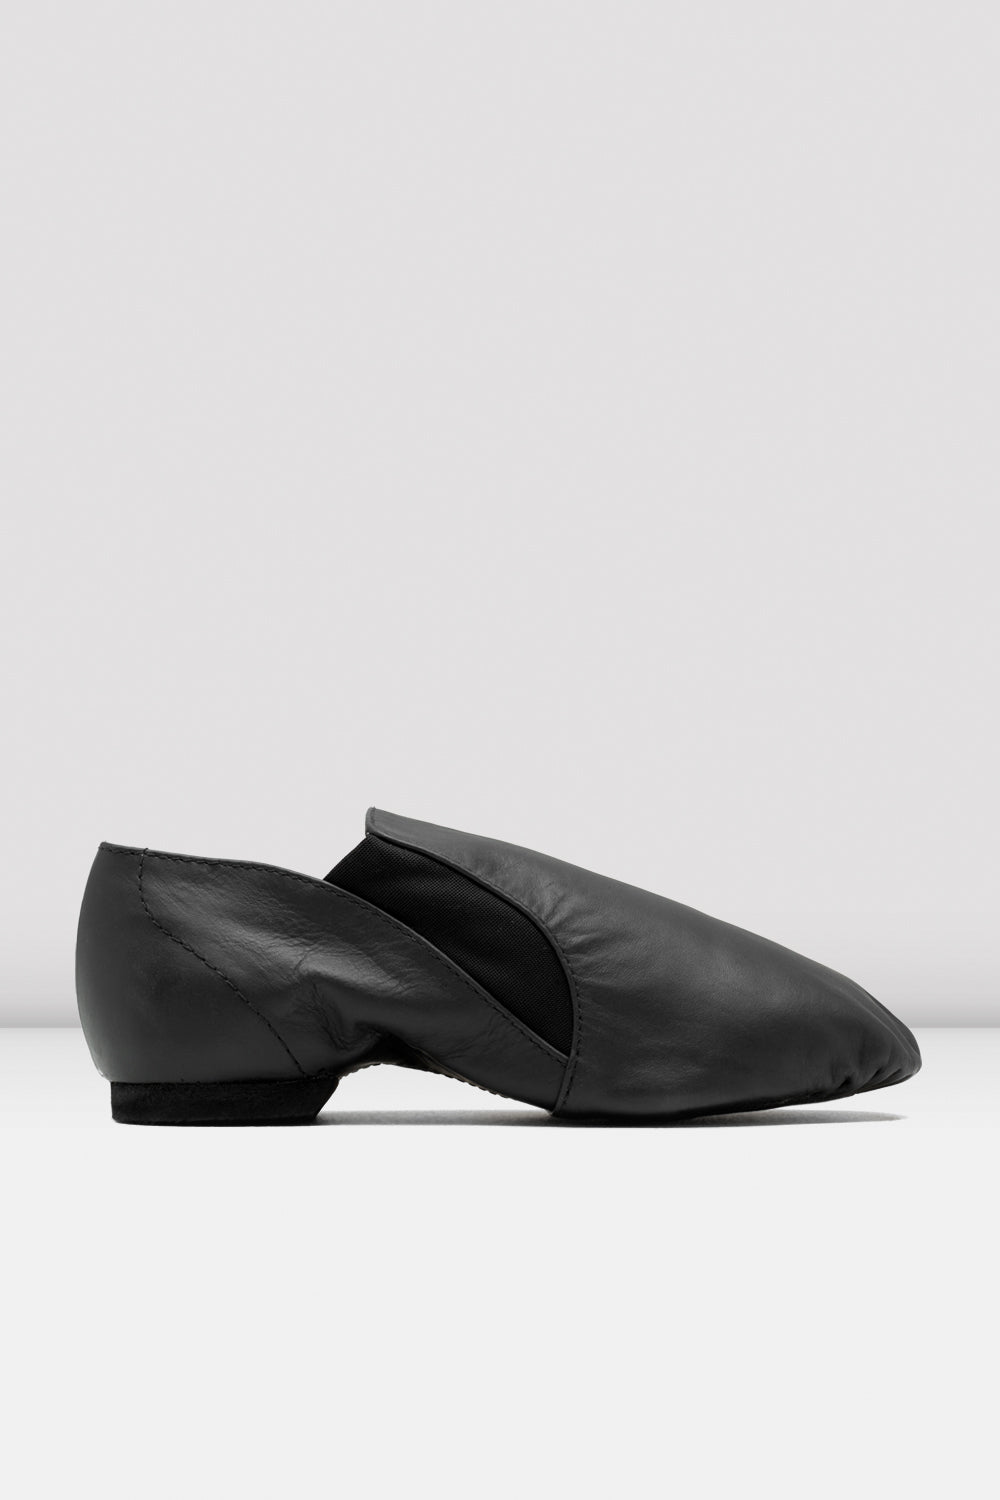 Mens Leather Elasta Jazz Booties - BLOCH US